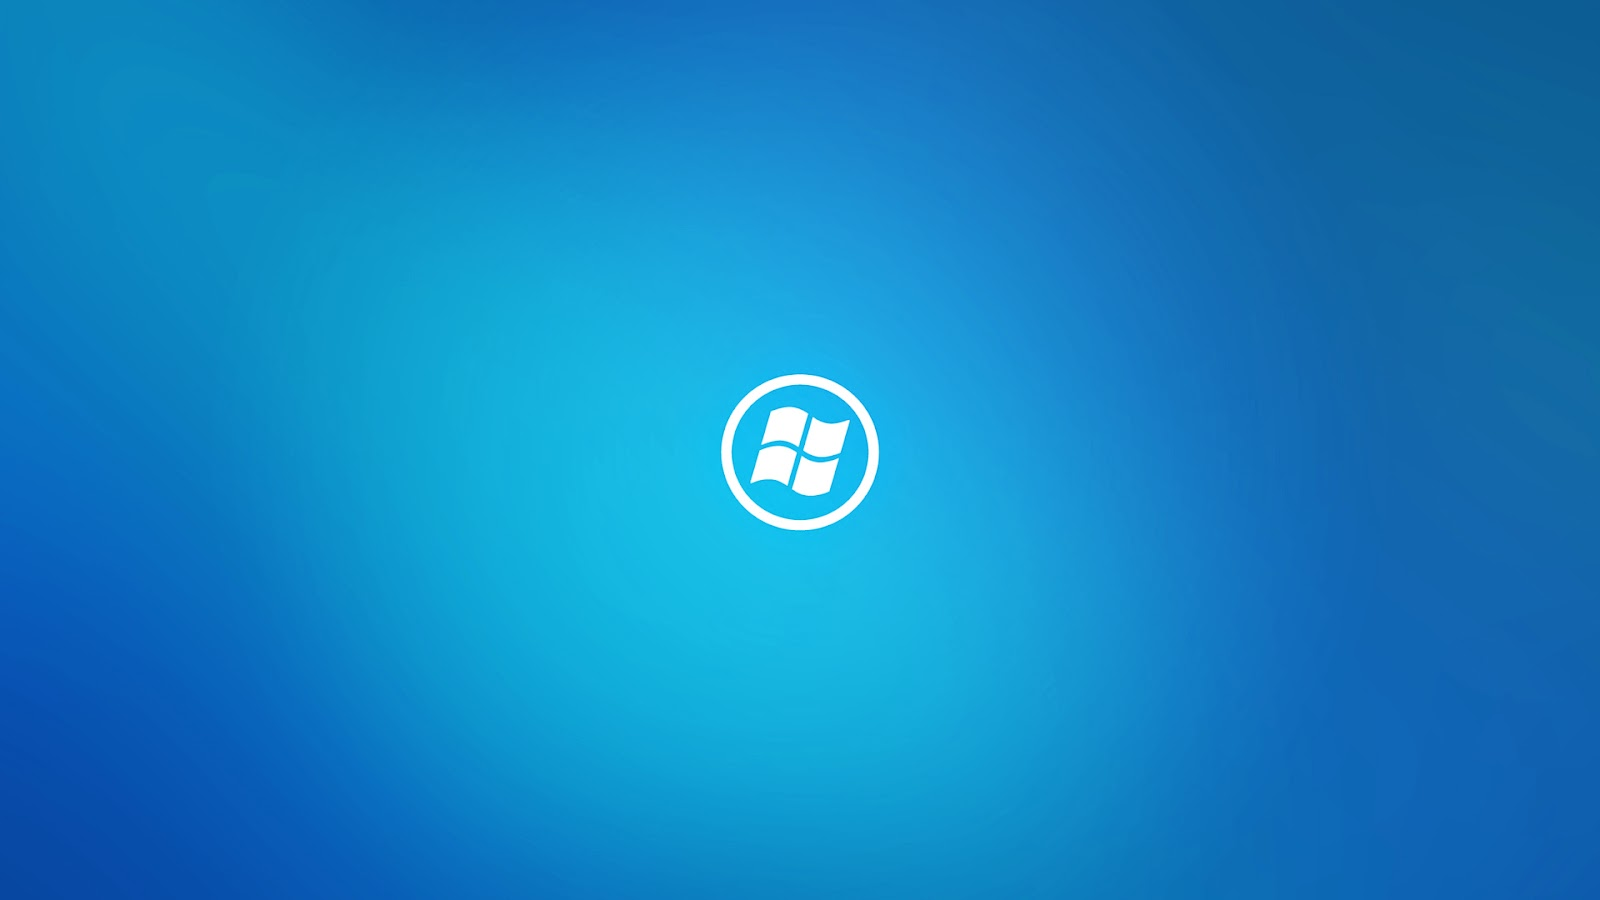 Free Windows 10 Wallpapers ~ HD Wallpapers | Free Software | Free ...